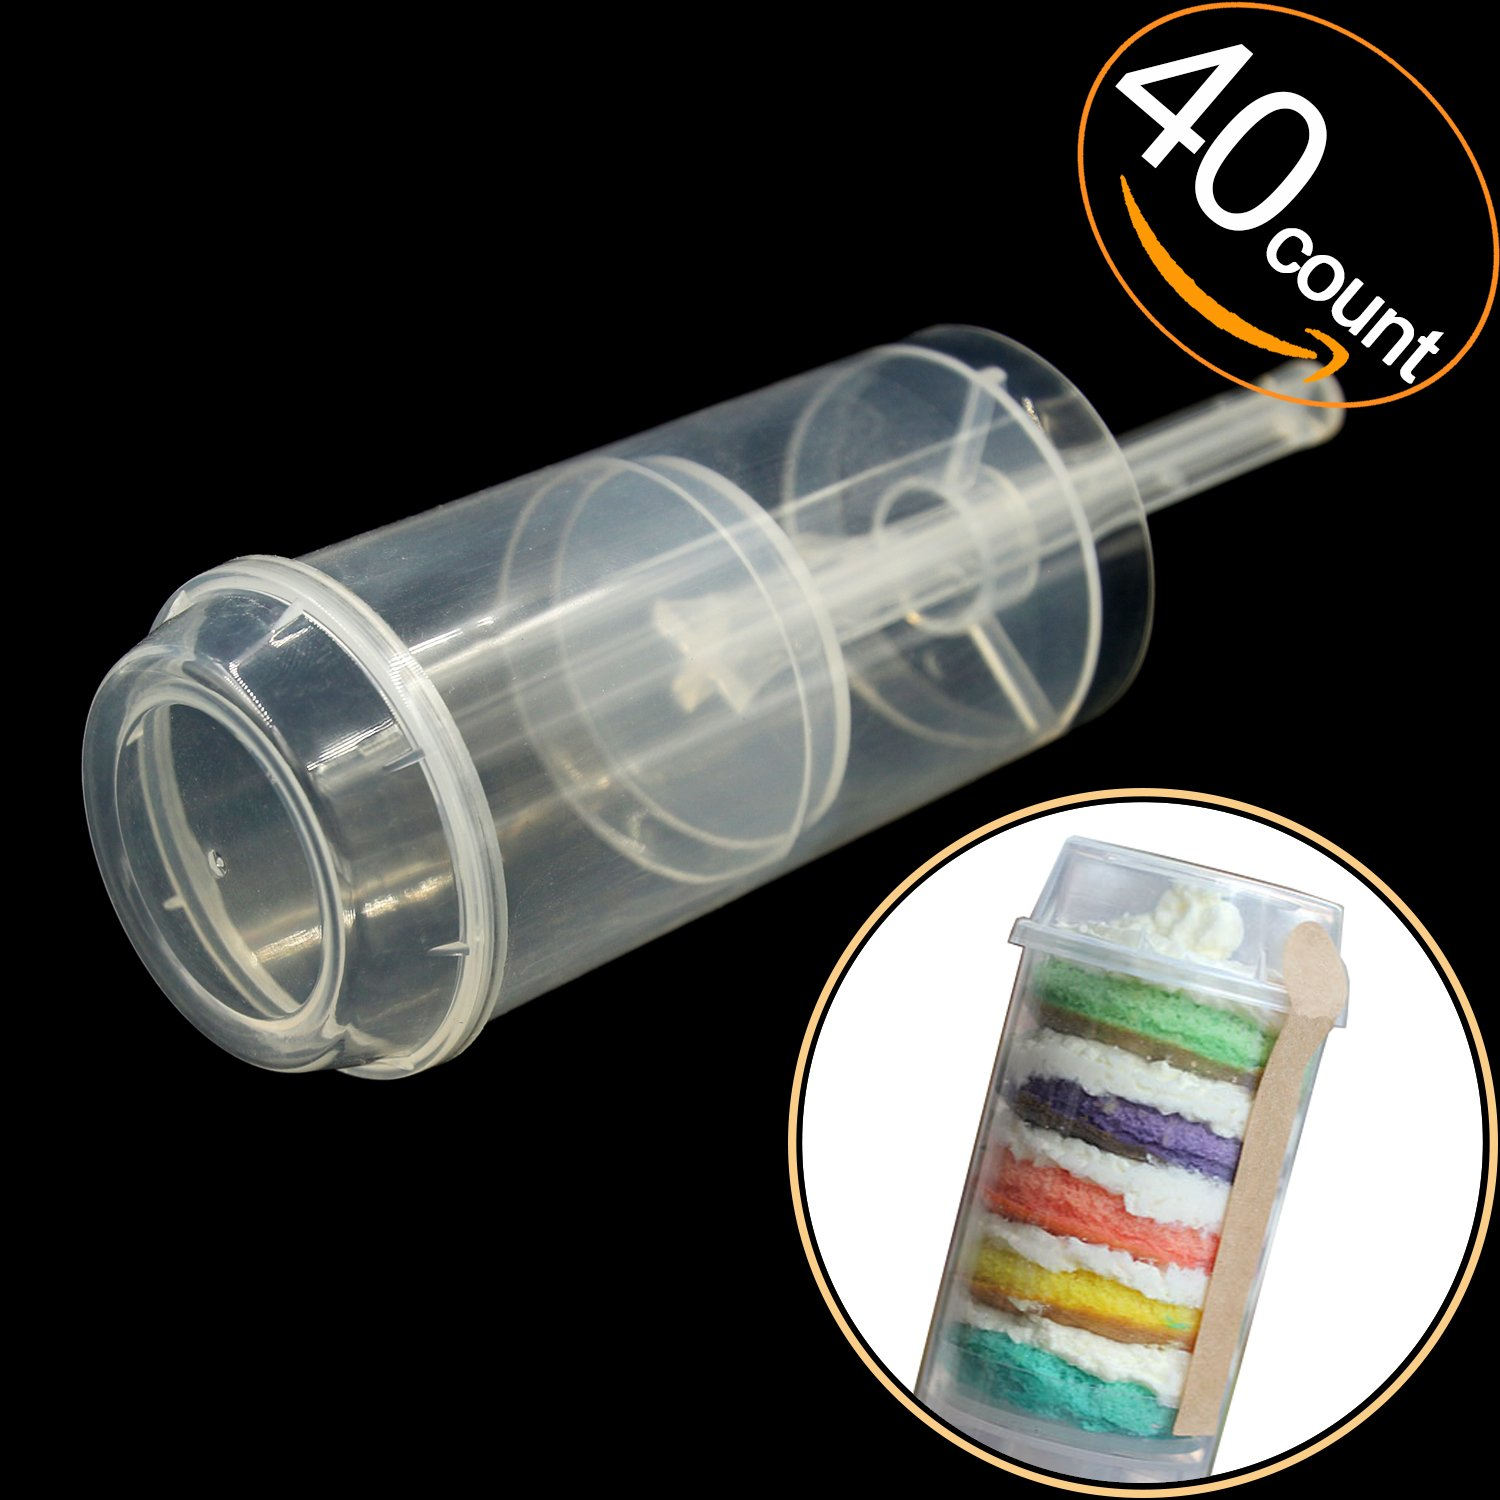 EKIND Round Shape Clear Push-Up Cake Pop Shooter (Push Pops) Plastic Containers with Lids, Base & Sticks, Pack of 40